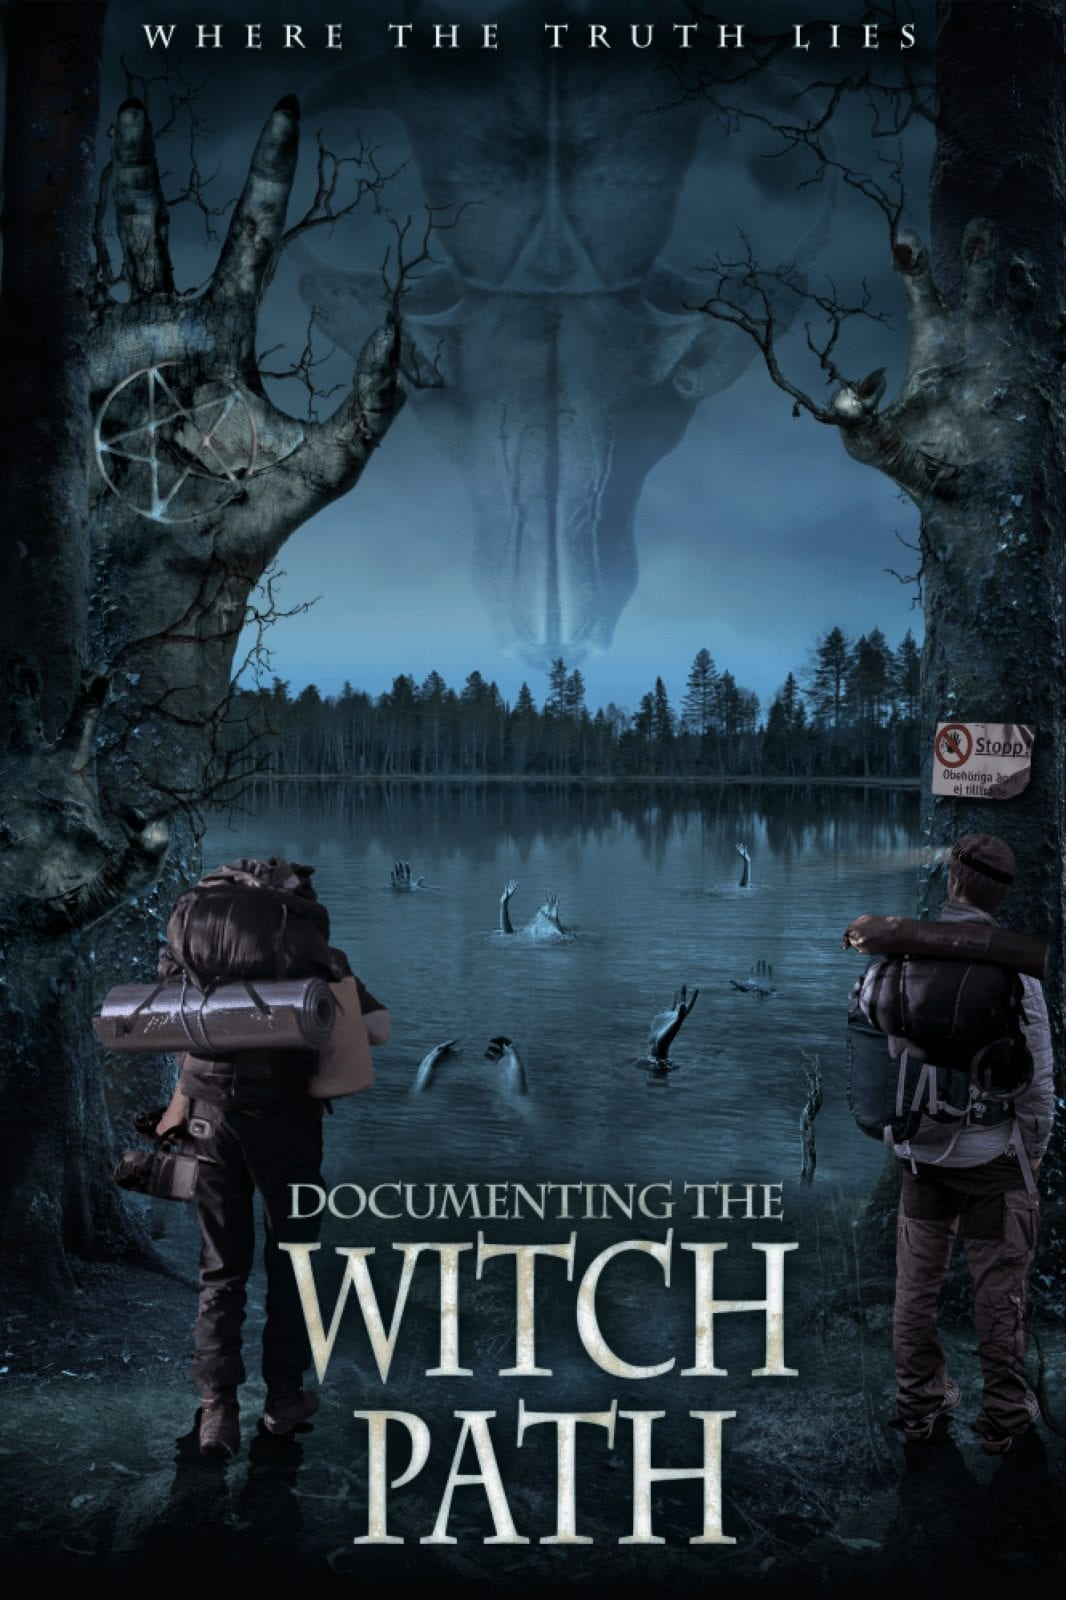 Documenting the Witch Path - Official Poster Ryan Brookhart